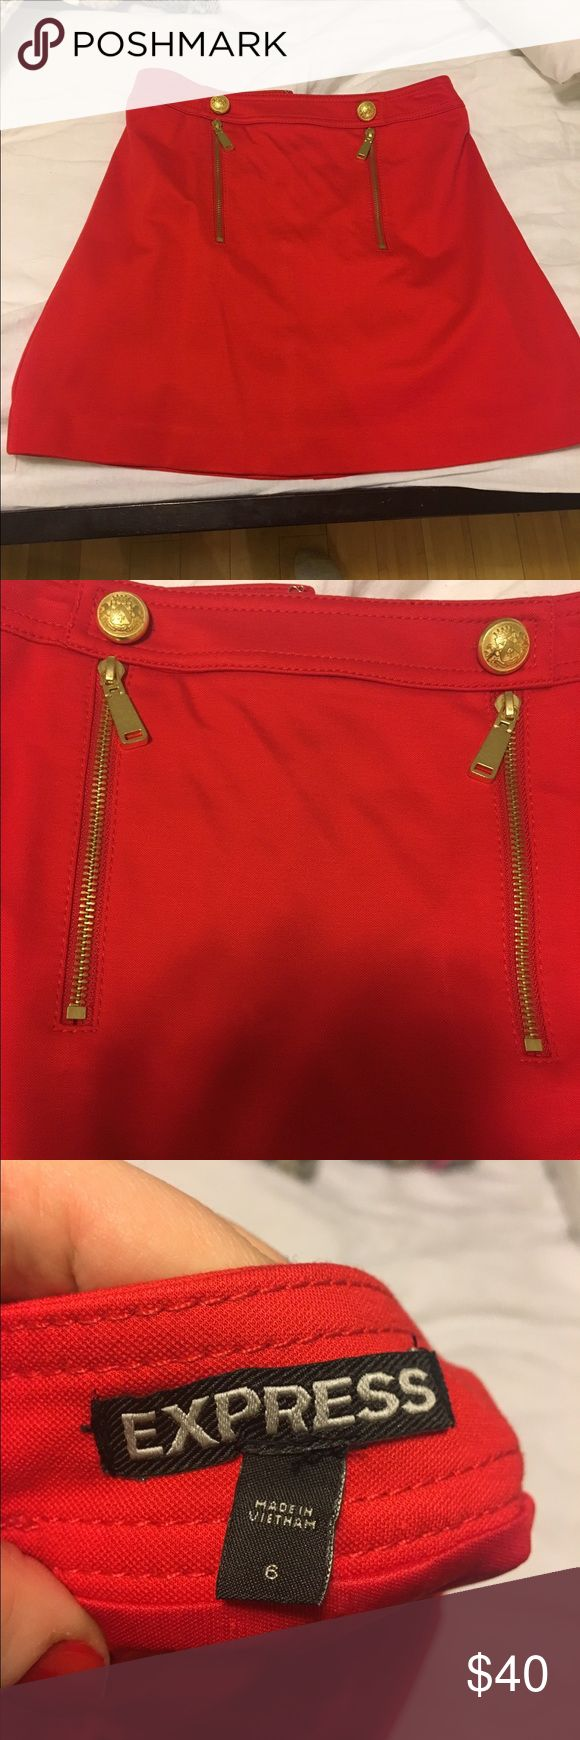 Express Nautical Skirt Red express skirt with gold accents. Zips up the back with a hook closure at the top. Express Skirts Midi